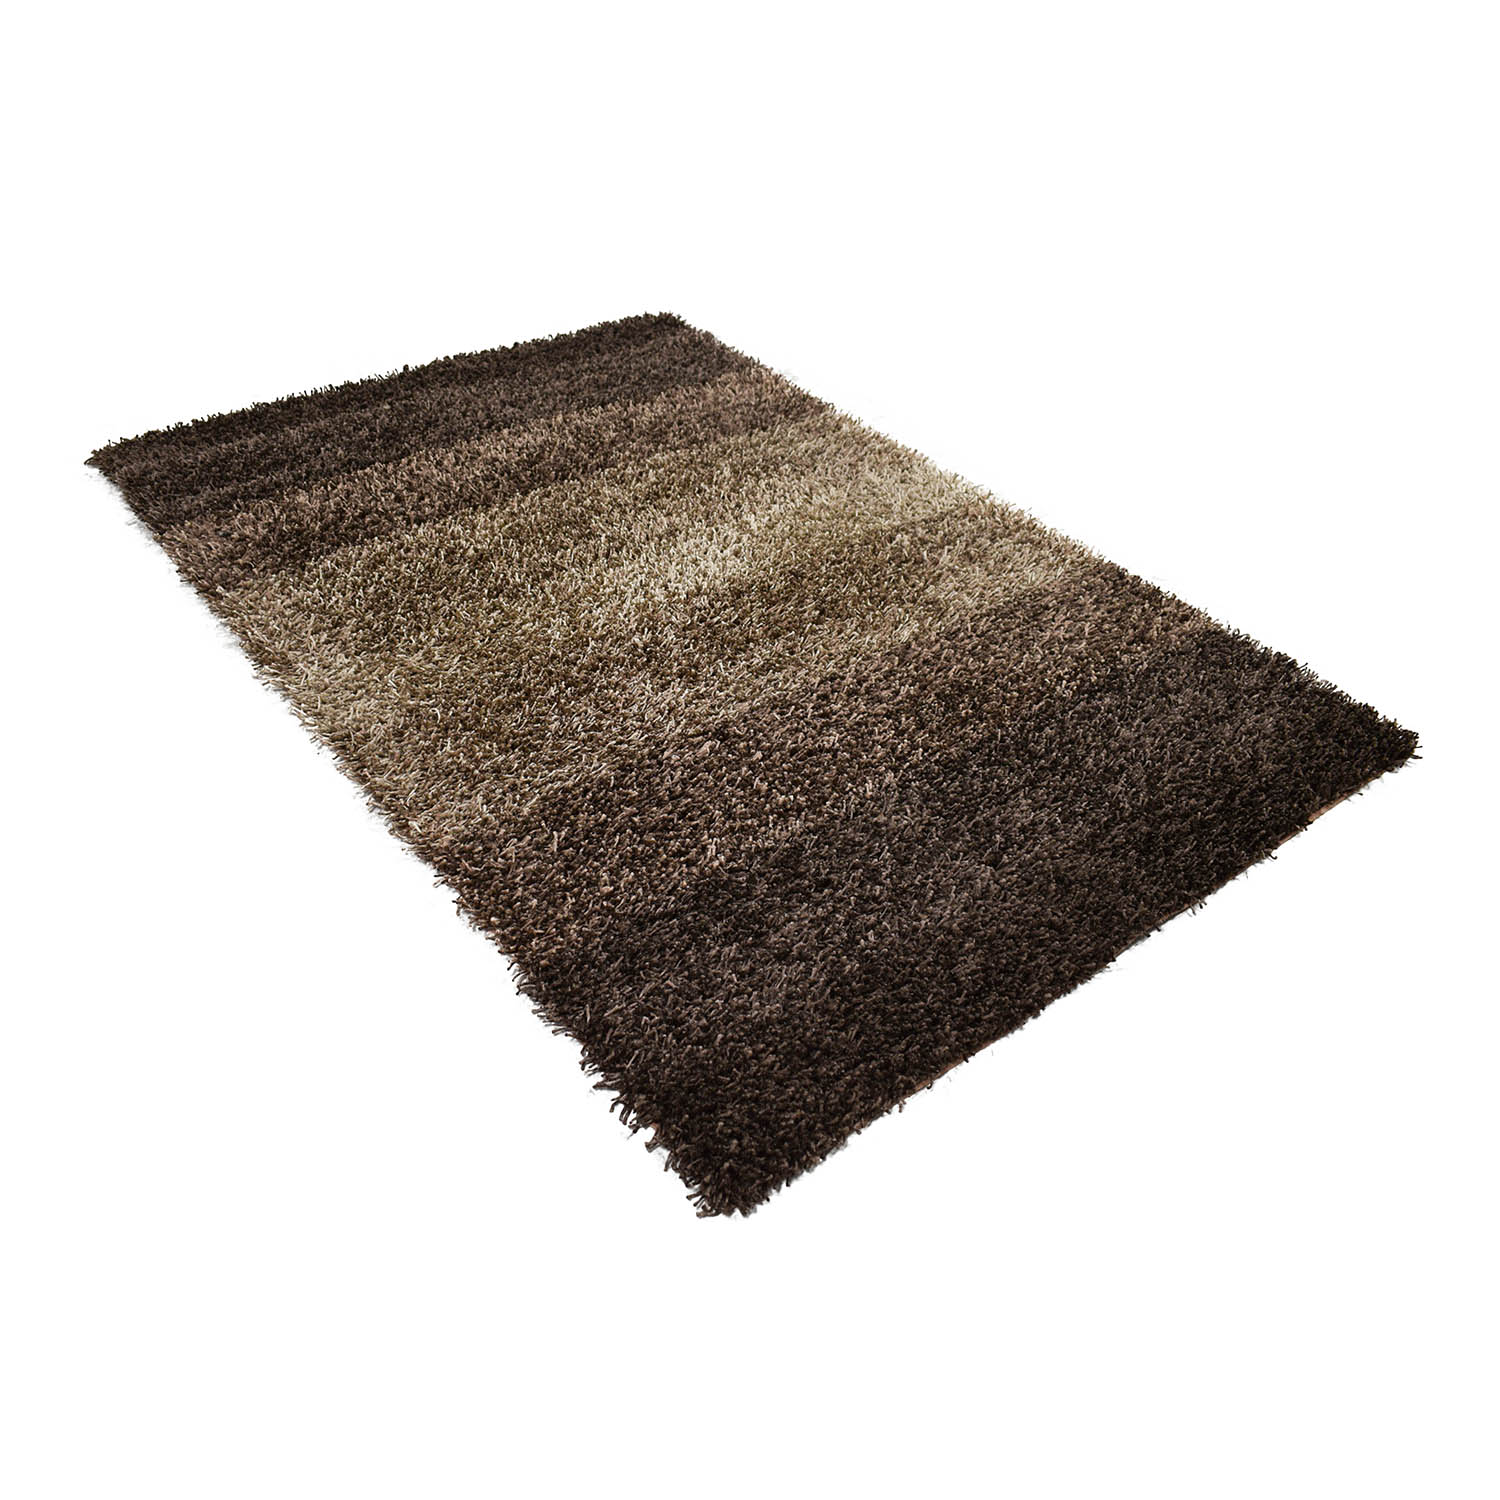 Spectrum Spectrum Brown Shag Rug for sale